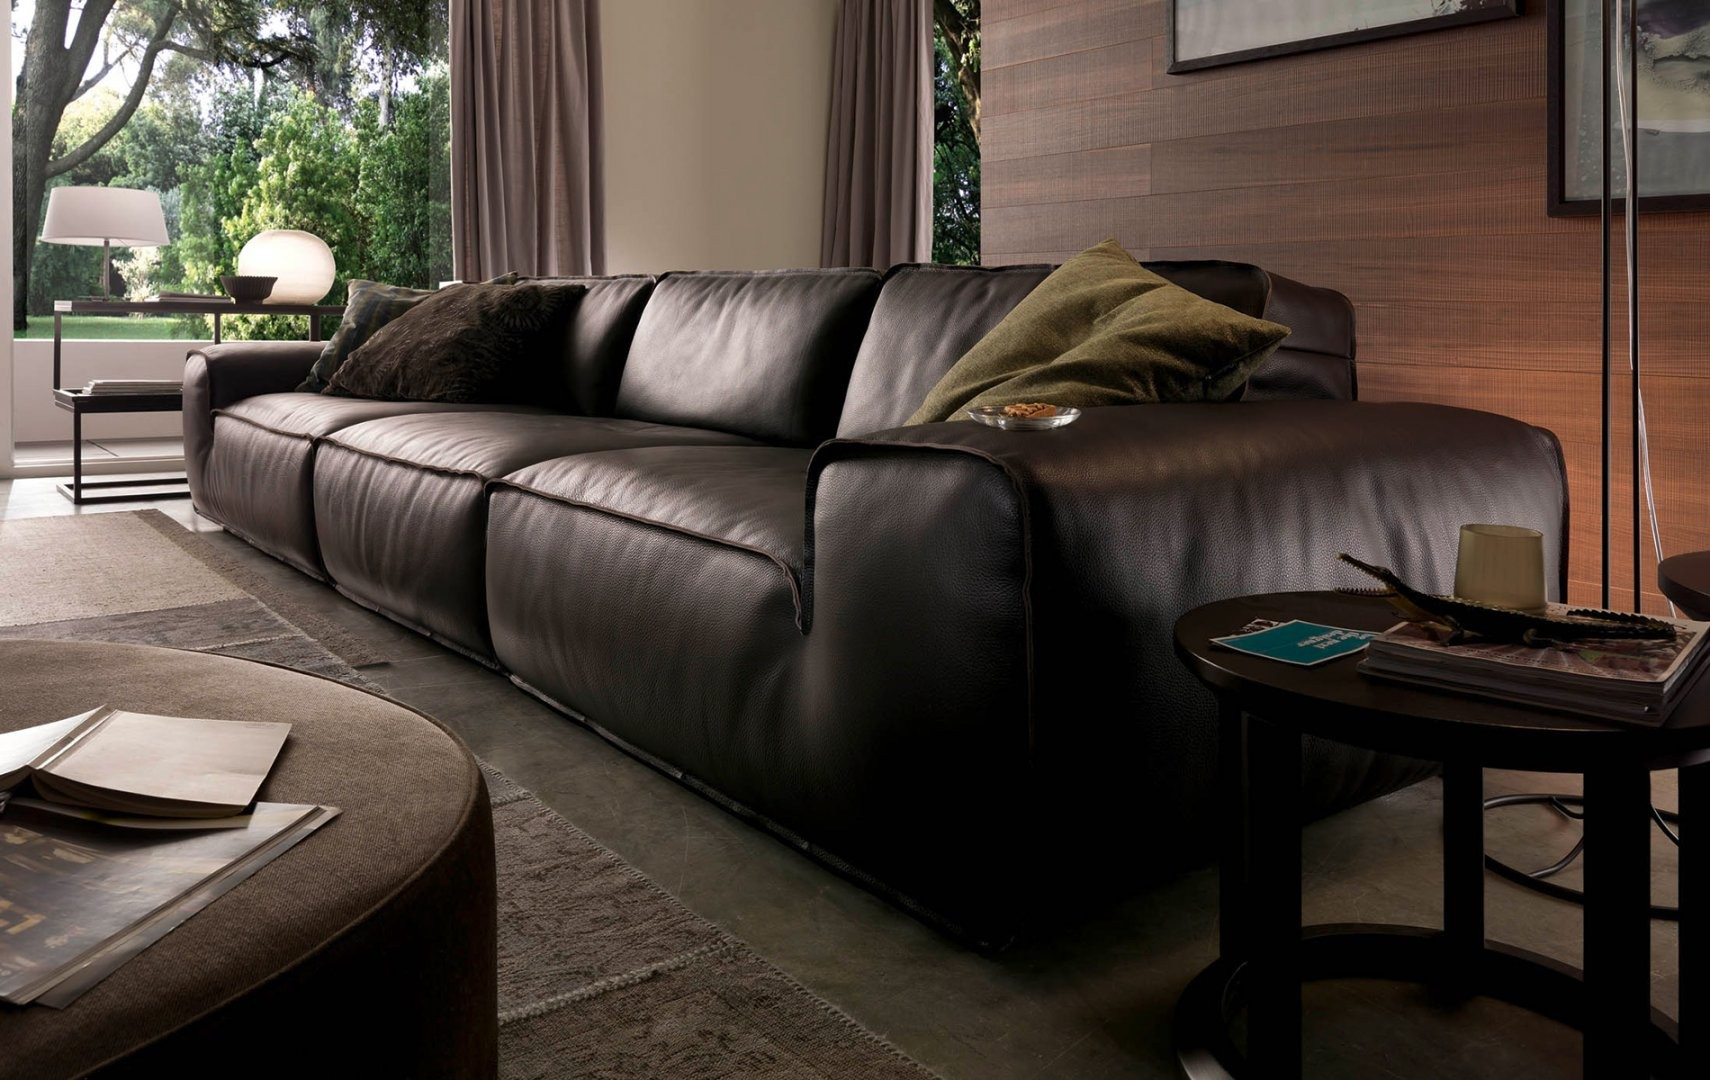 Chateau Dax Furniture Reviews: Avenue Leather Sectional By Chateau D'Ax Italia Is